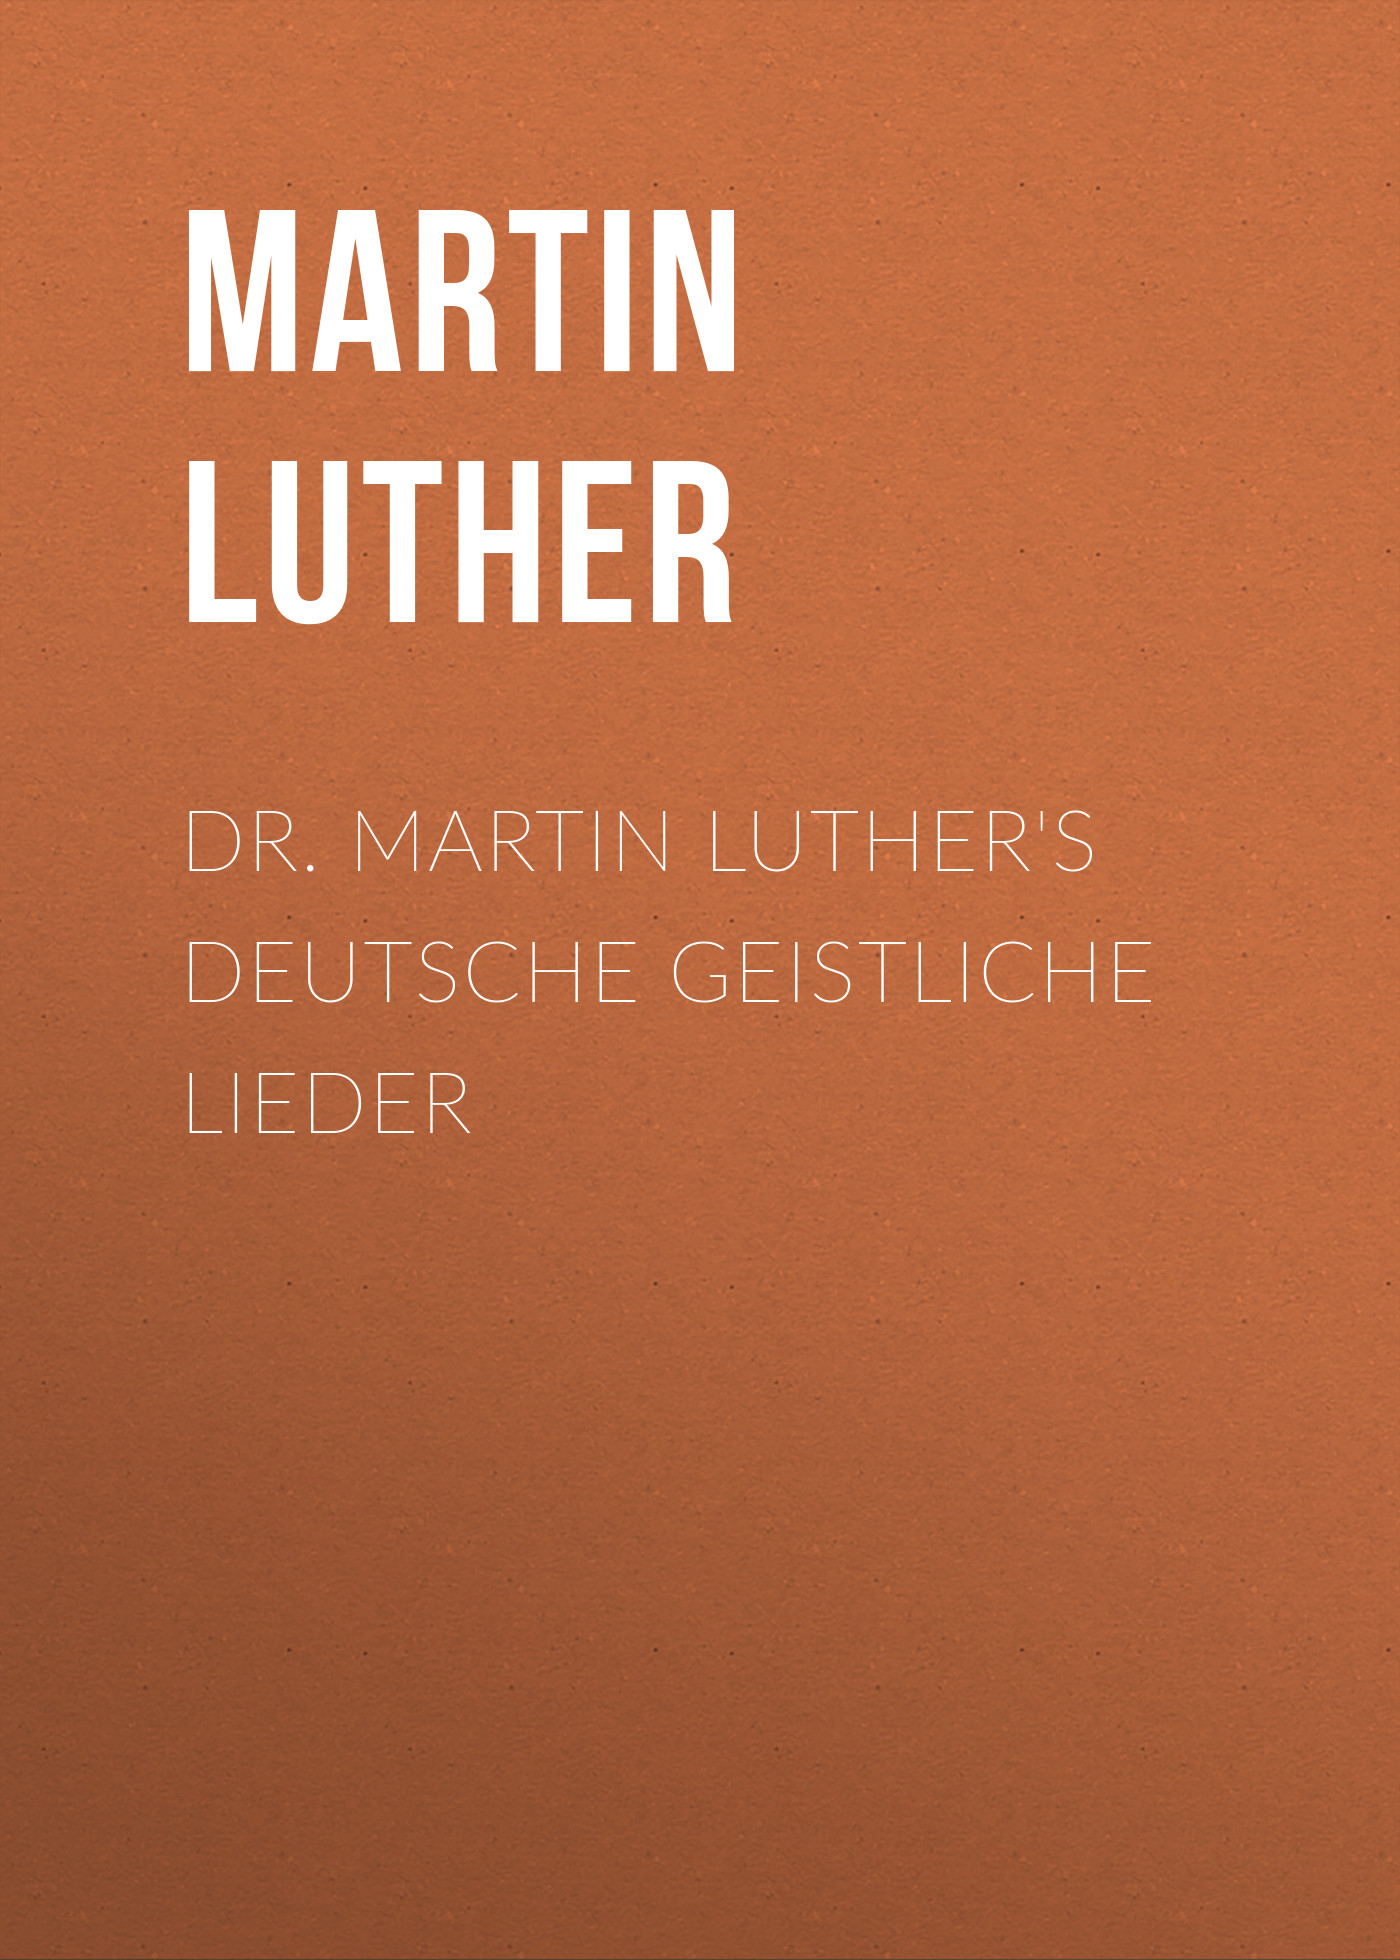 Martin Luther Dr. Martin Luther's Deutsche Geistliche Lieder кеды martin pescatore martin pescatore ma108awita45